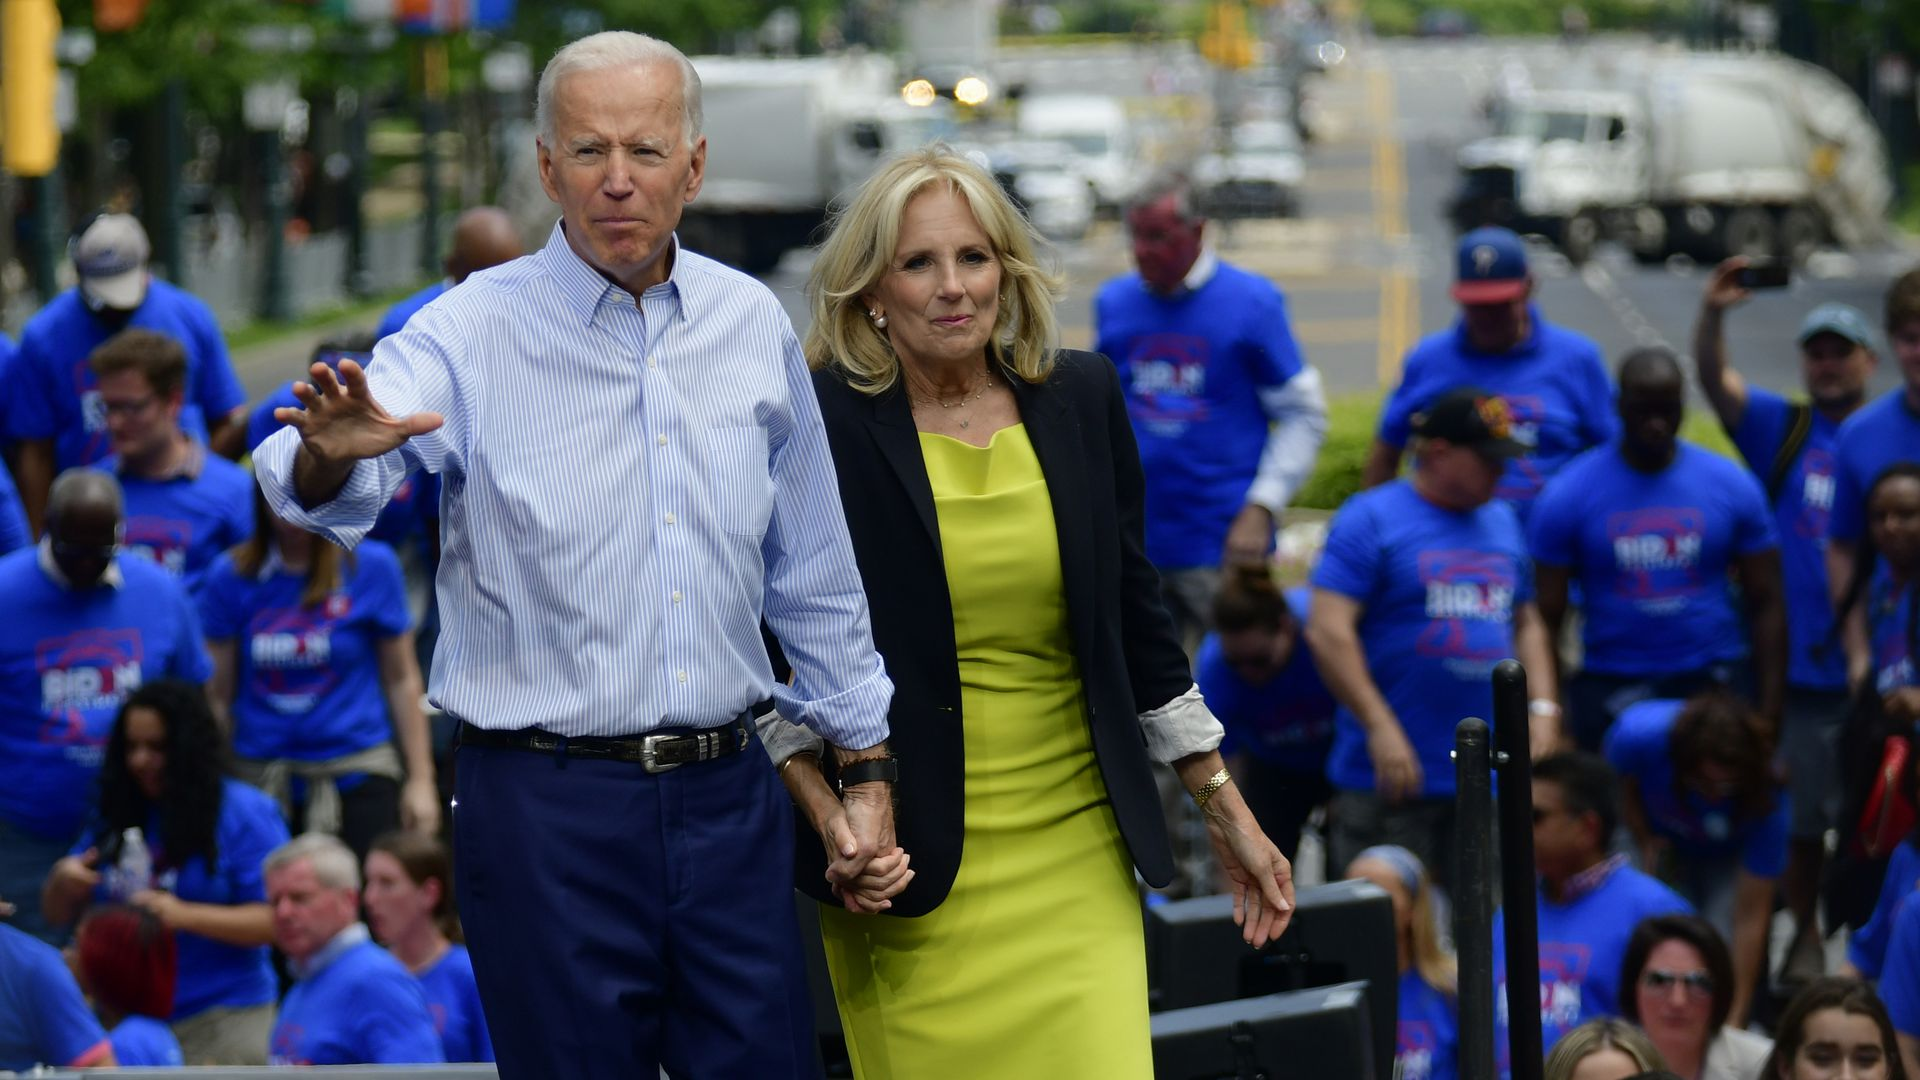 Philadelphia Joe and Jill Biden share the stage as former Vice President kicks off his 2020 campaign at an outdoor rally on the Benjamin Franklin Parkway in Philadelphia